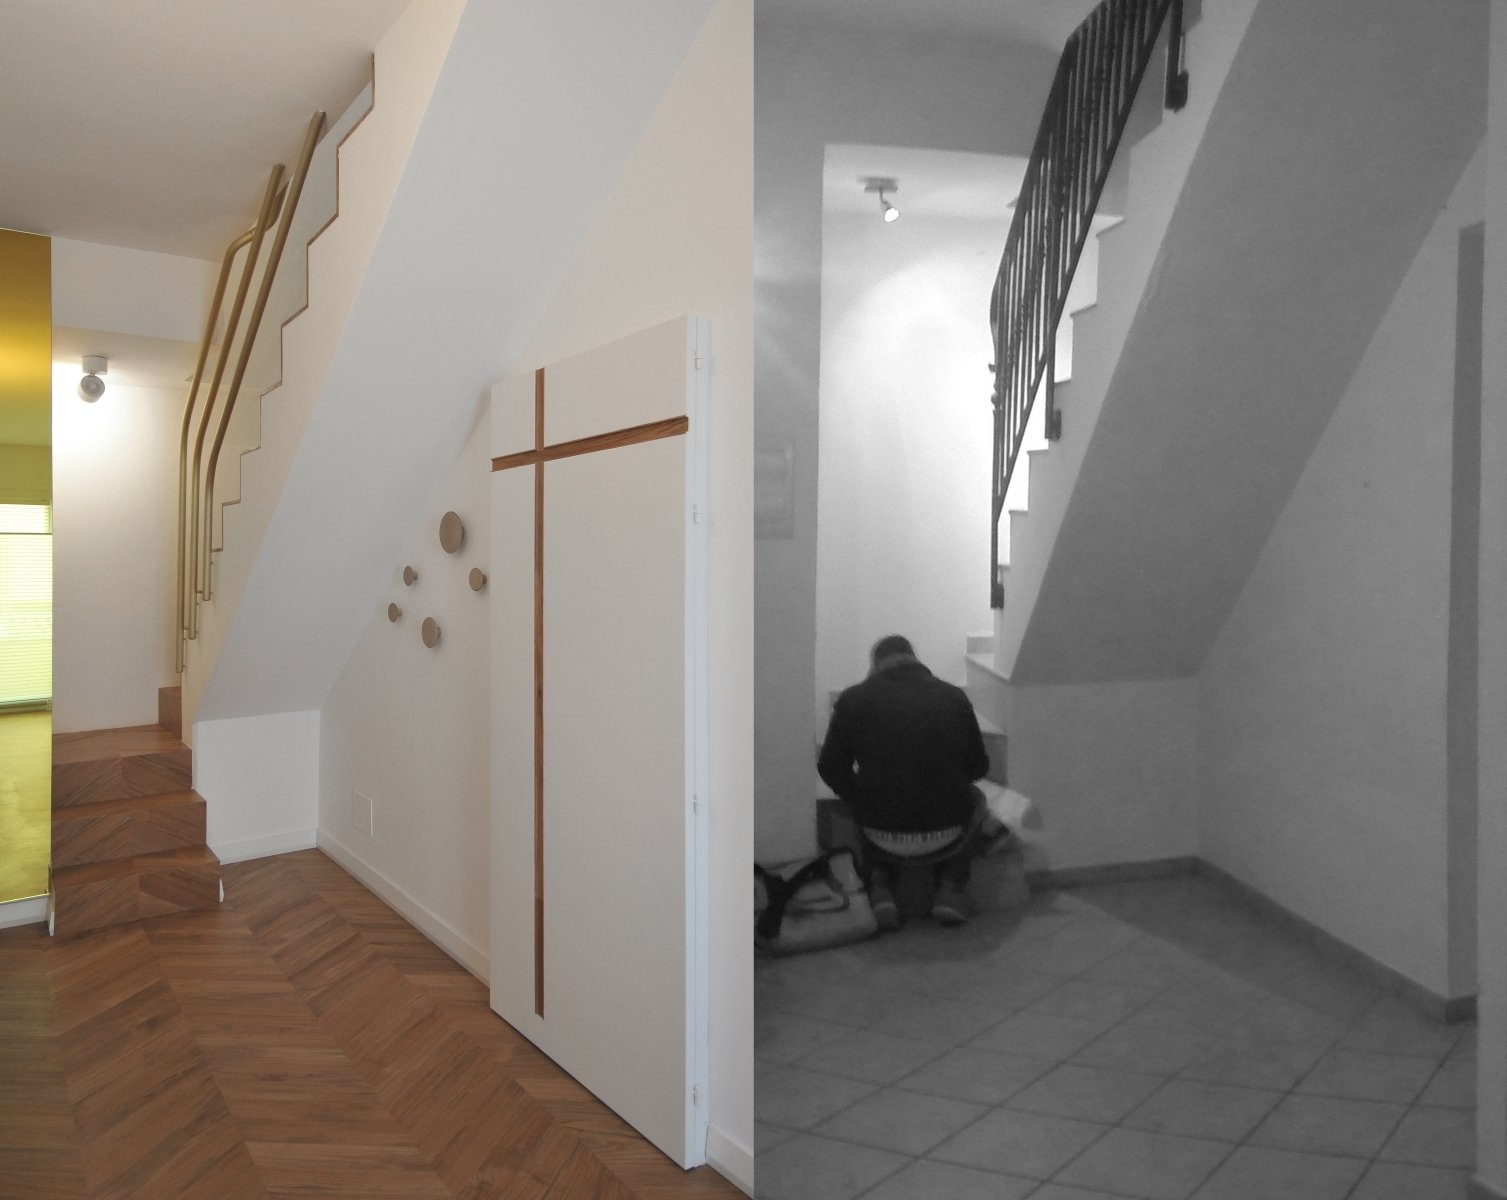 before and after photos of the staircase